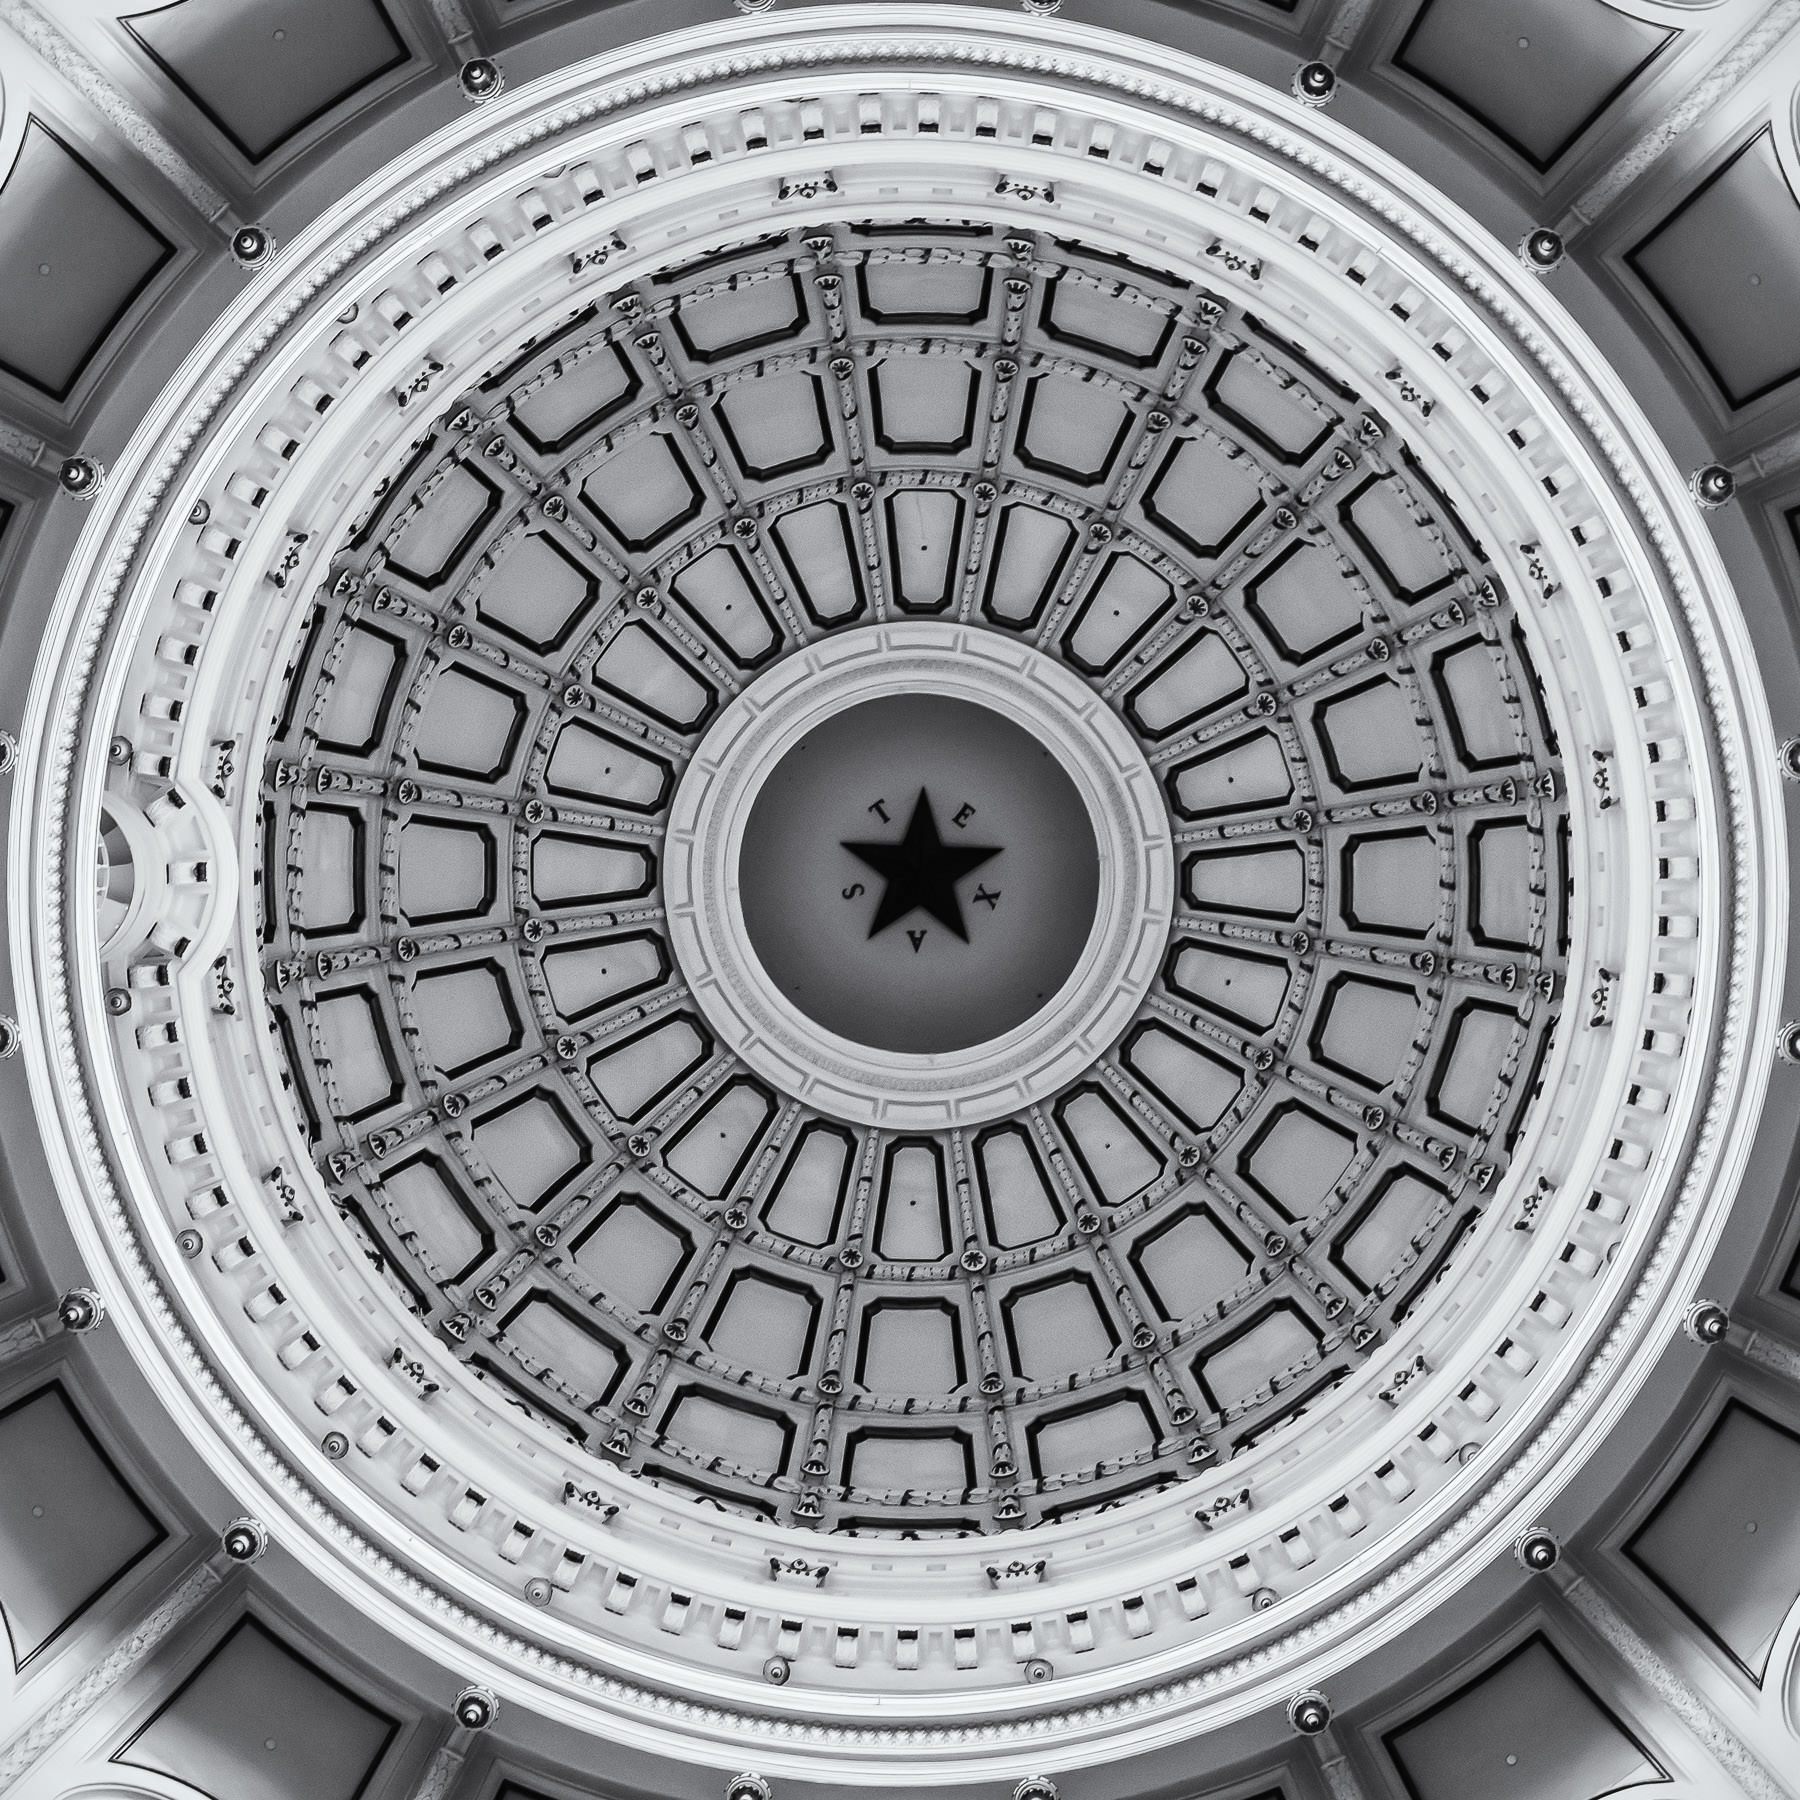 Interior detail of the dome atop the rotunda of the Texas State Capitol, Austin.